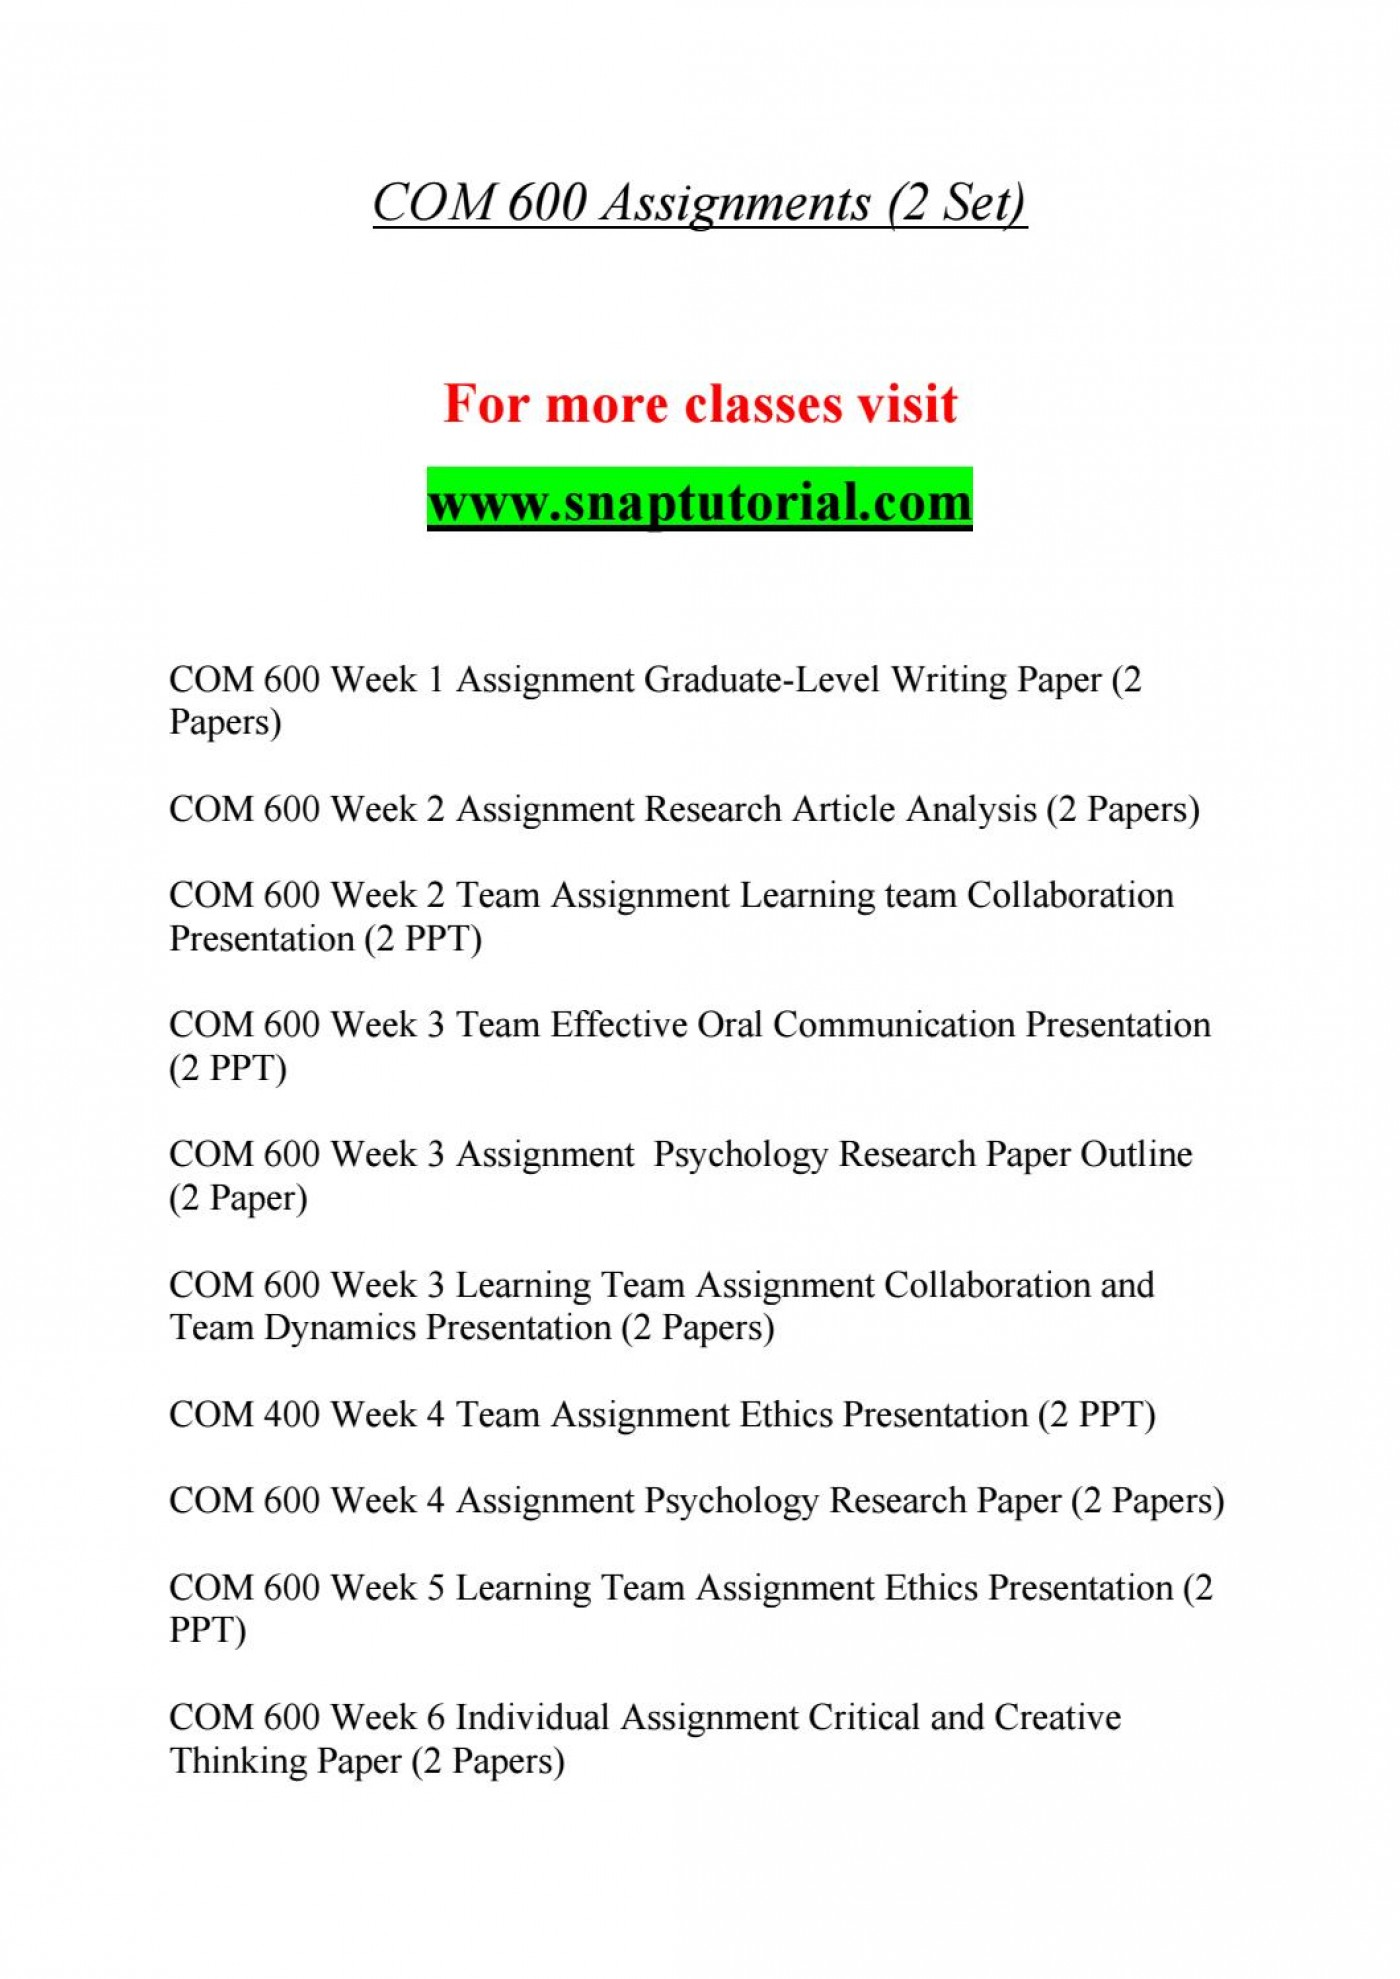 010 Research Paper Psychology Outline Com Page 1 Striking 600 Com/600 1400